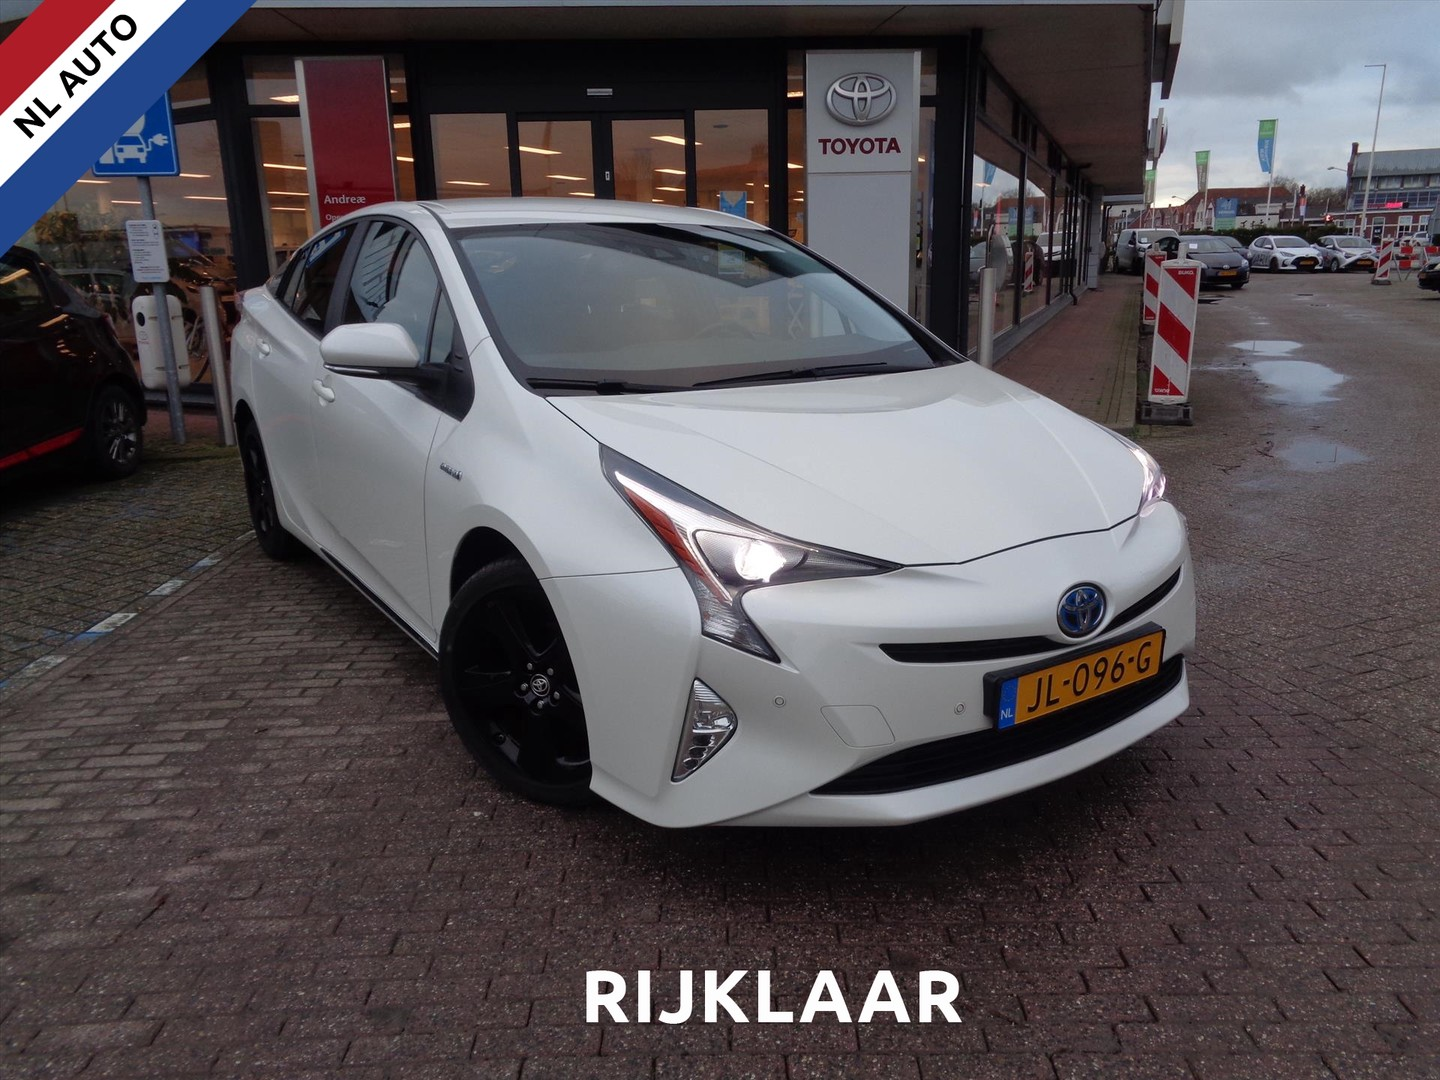 Toyota Prius 1.8 full hybrid 122pk aut business plus